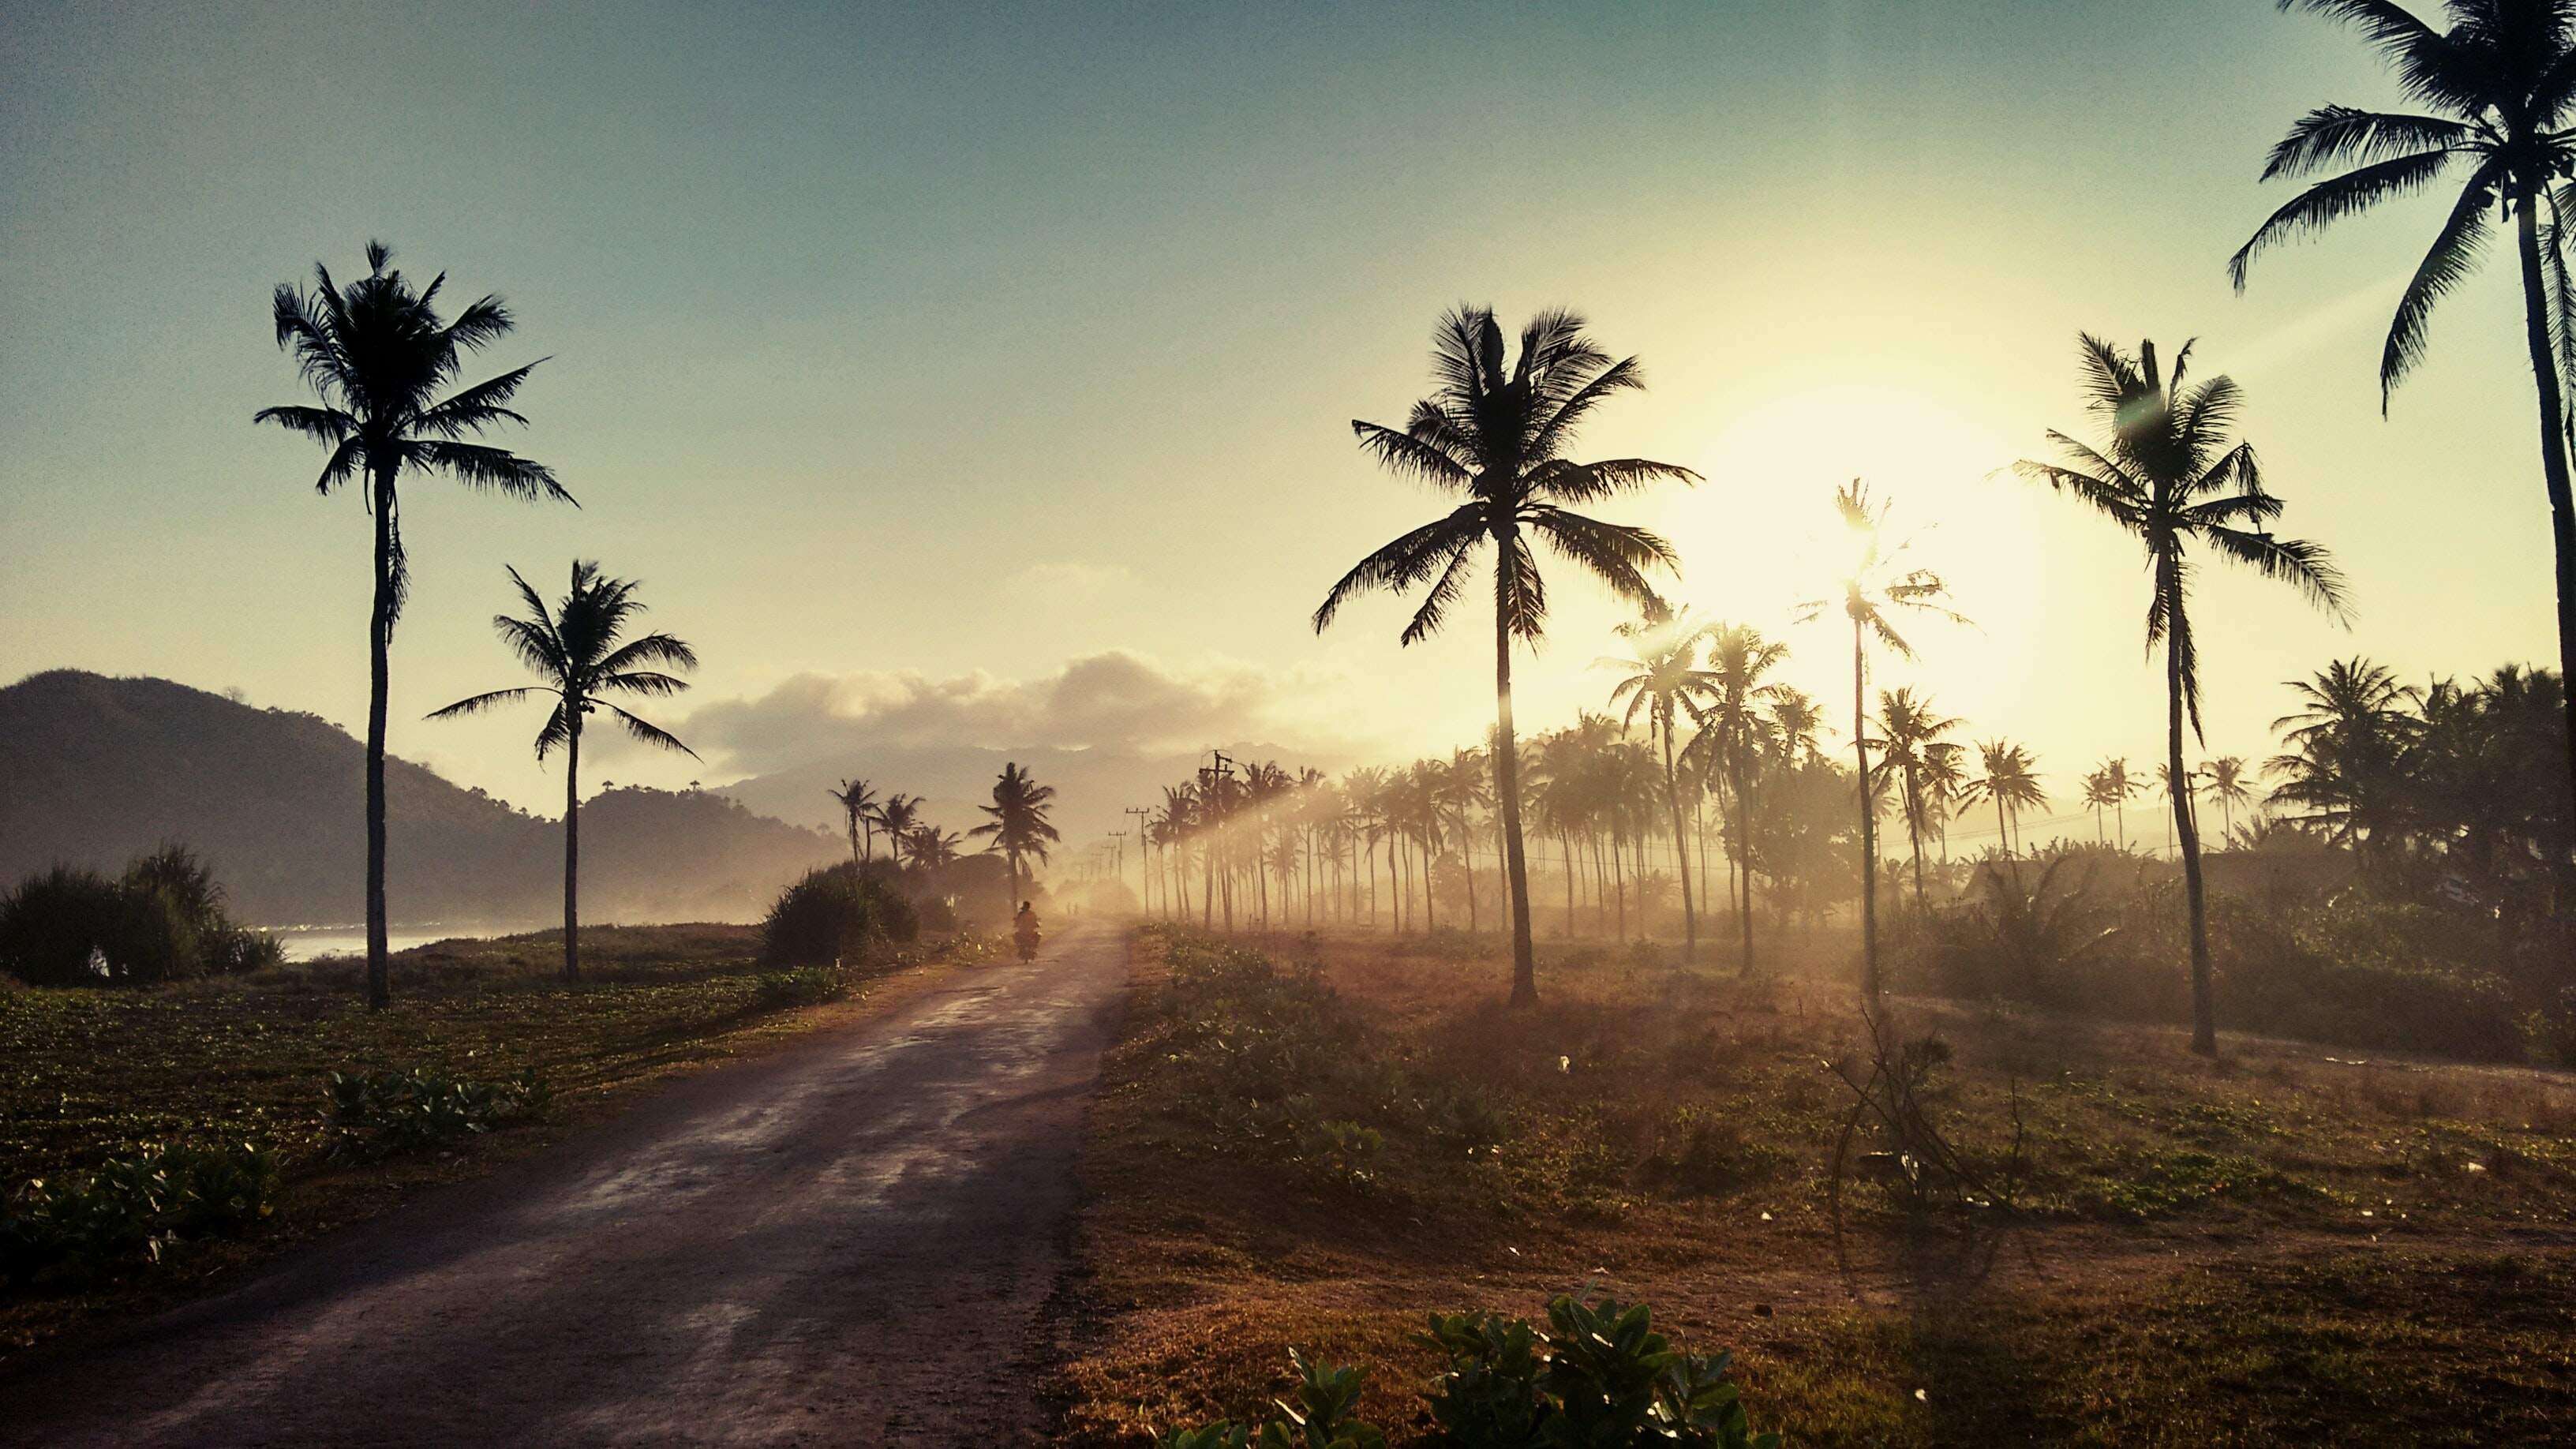 landscape photo of coconut trees